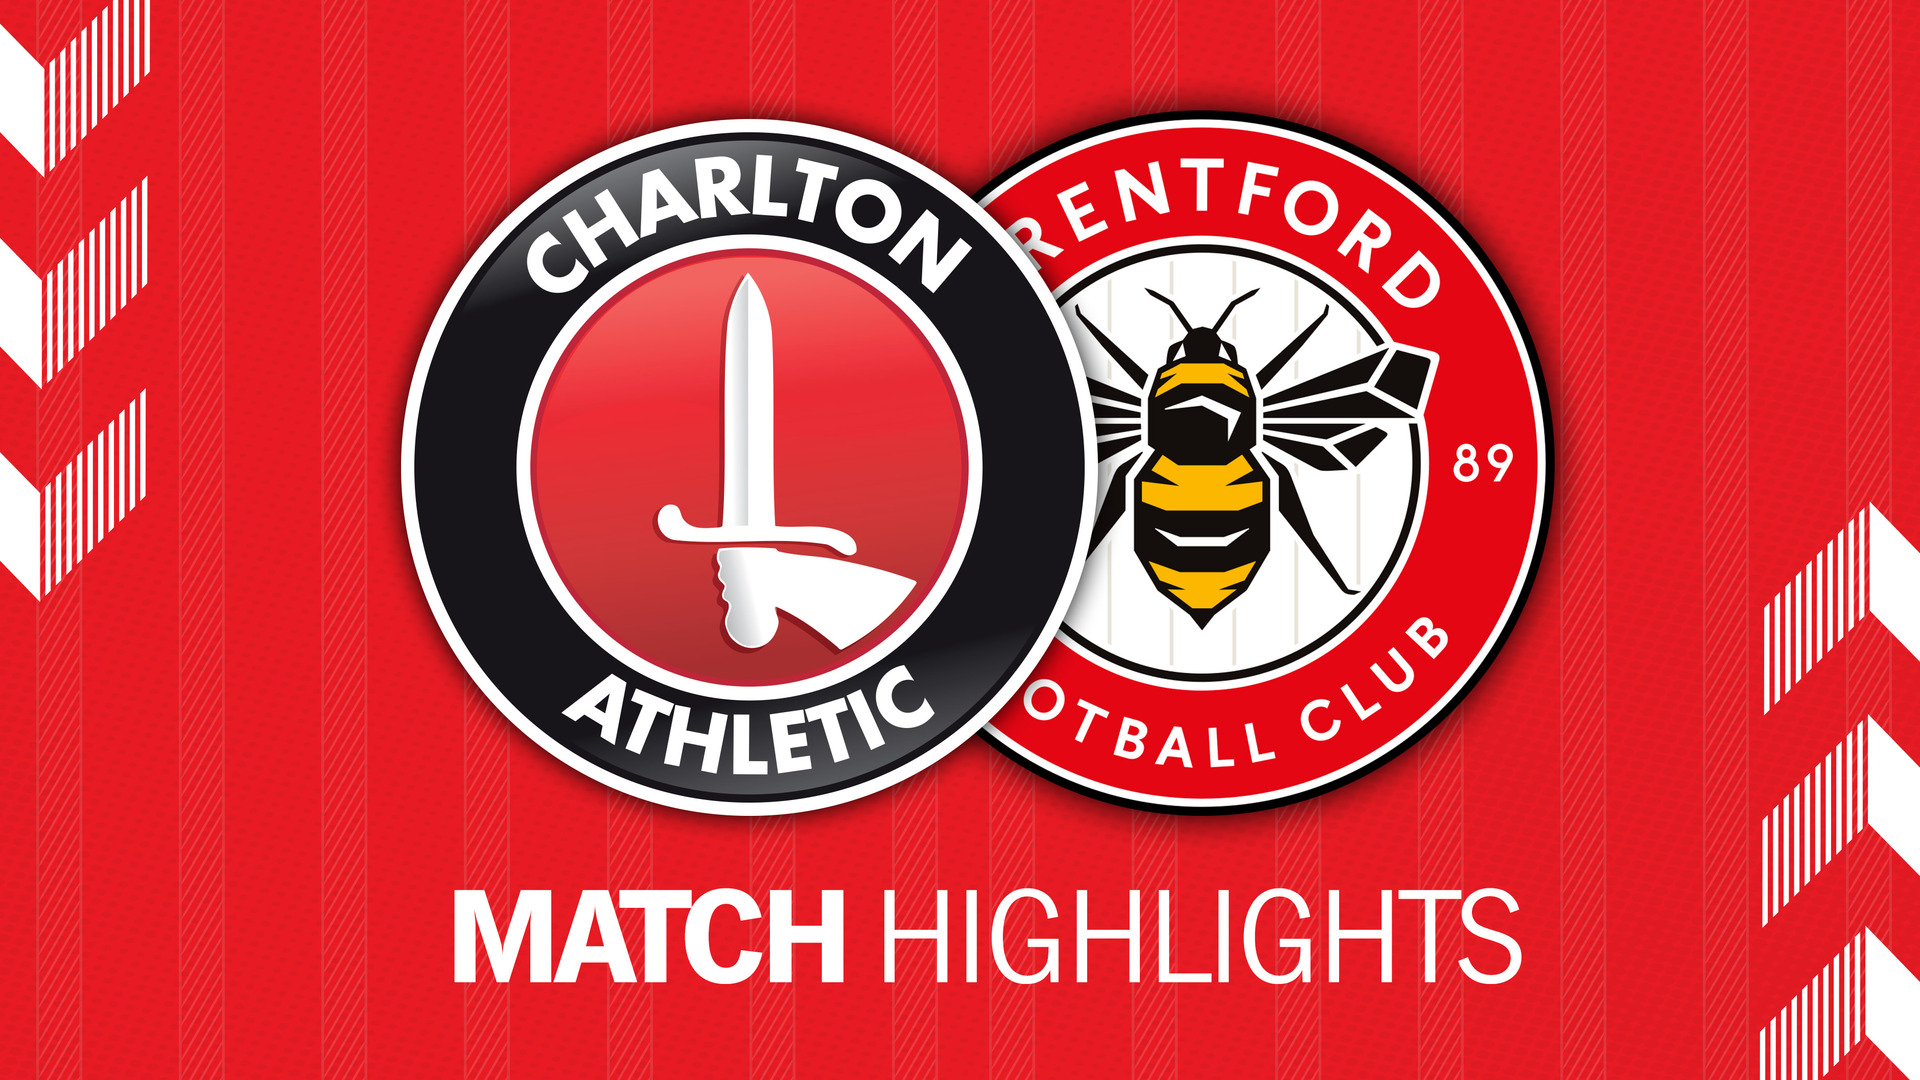 6 HIGHLIGHTS | Charlton 1 Brentford 0 (August 2019)